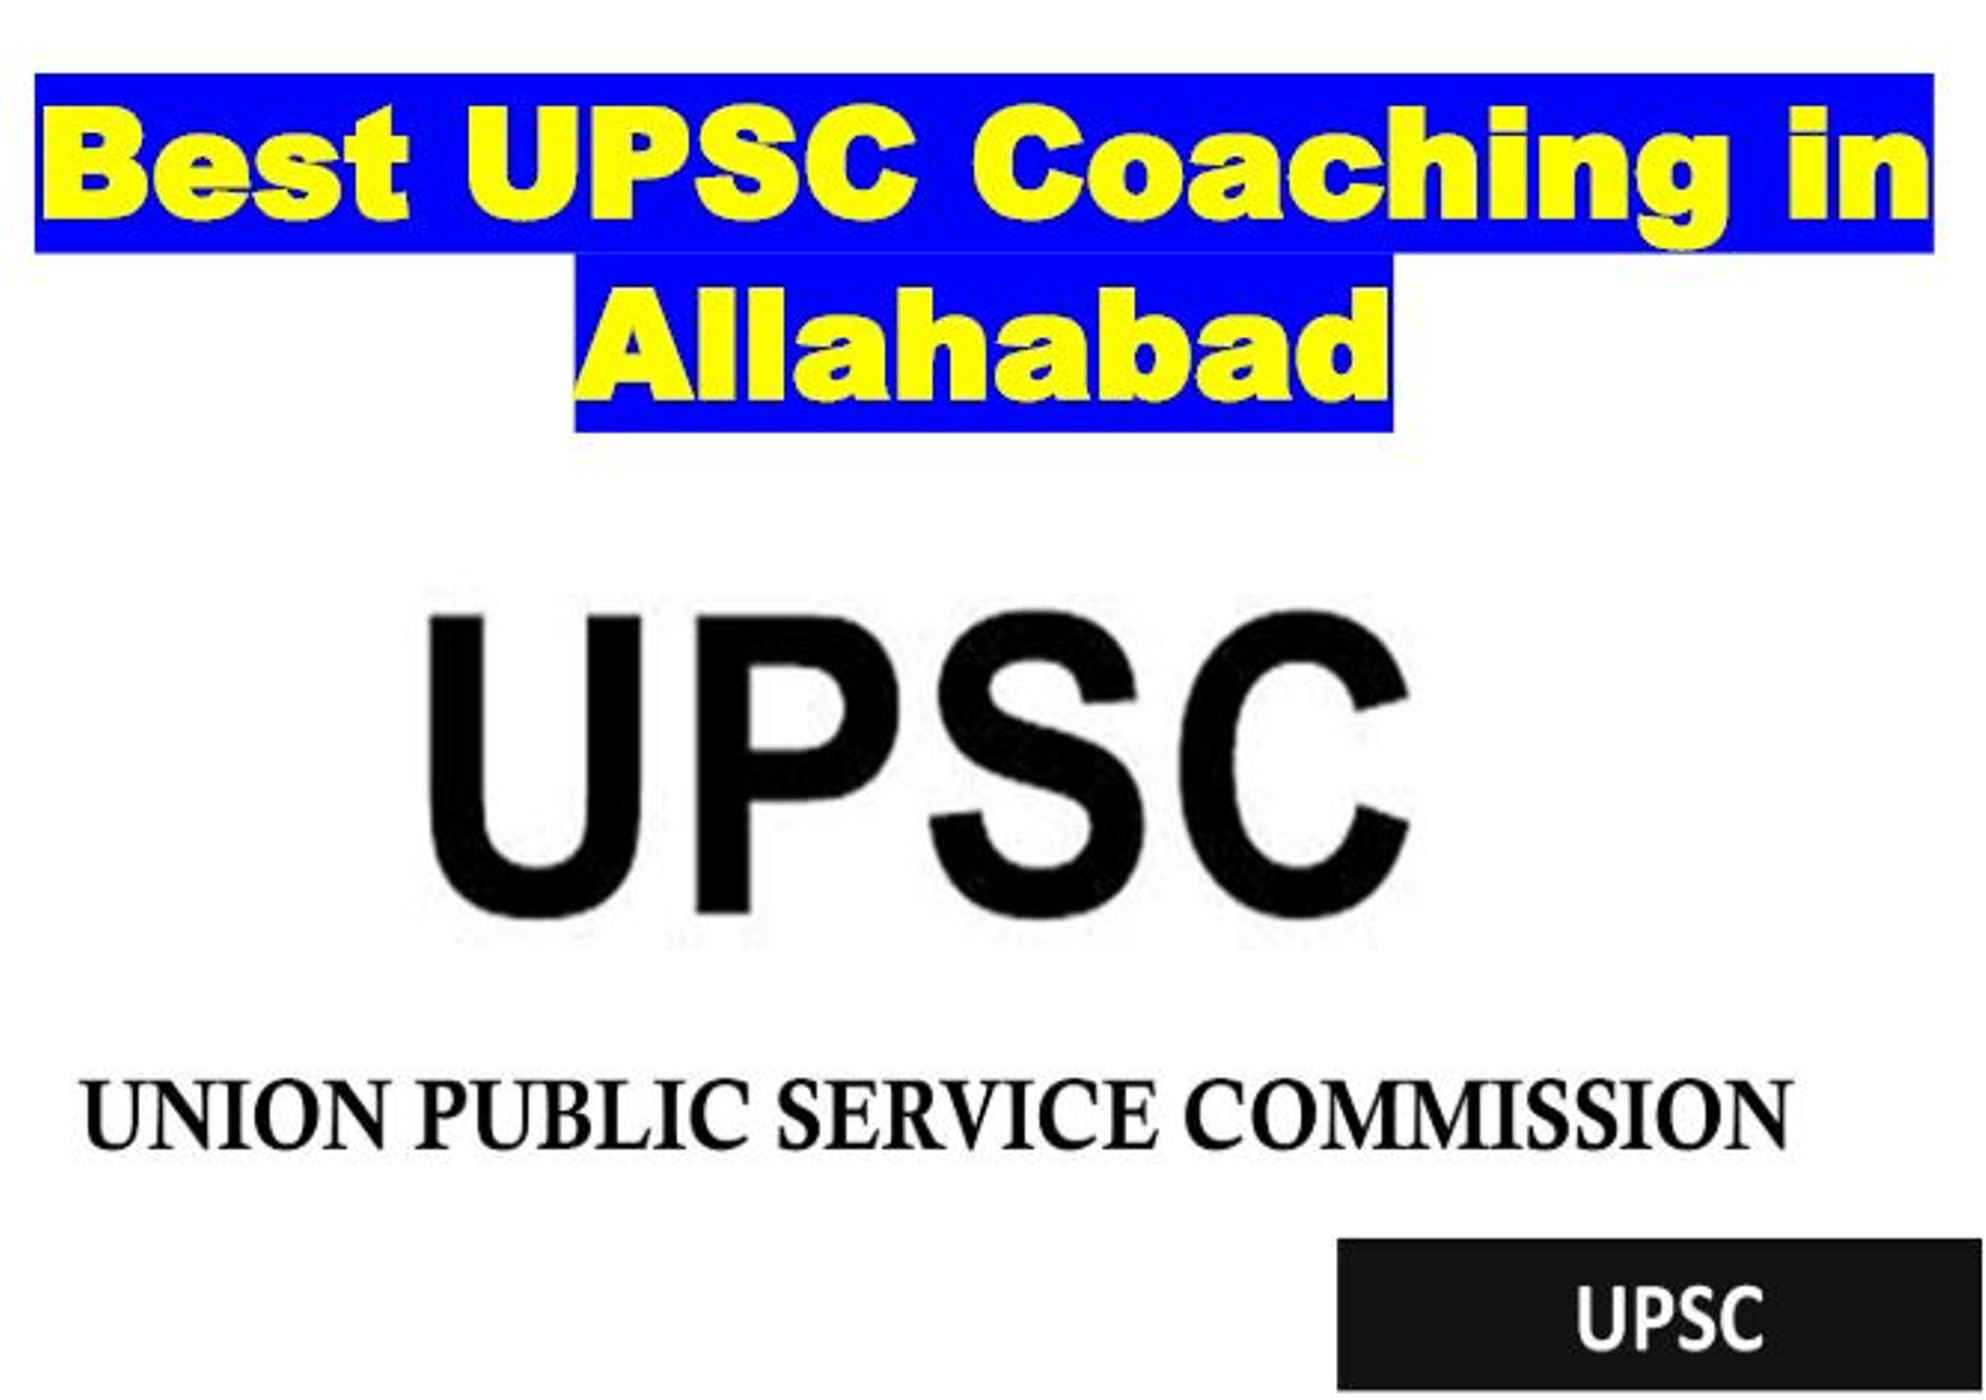 Top UPSC Coaching in Allahabad